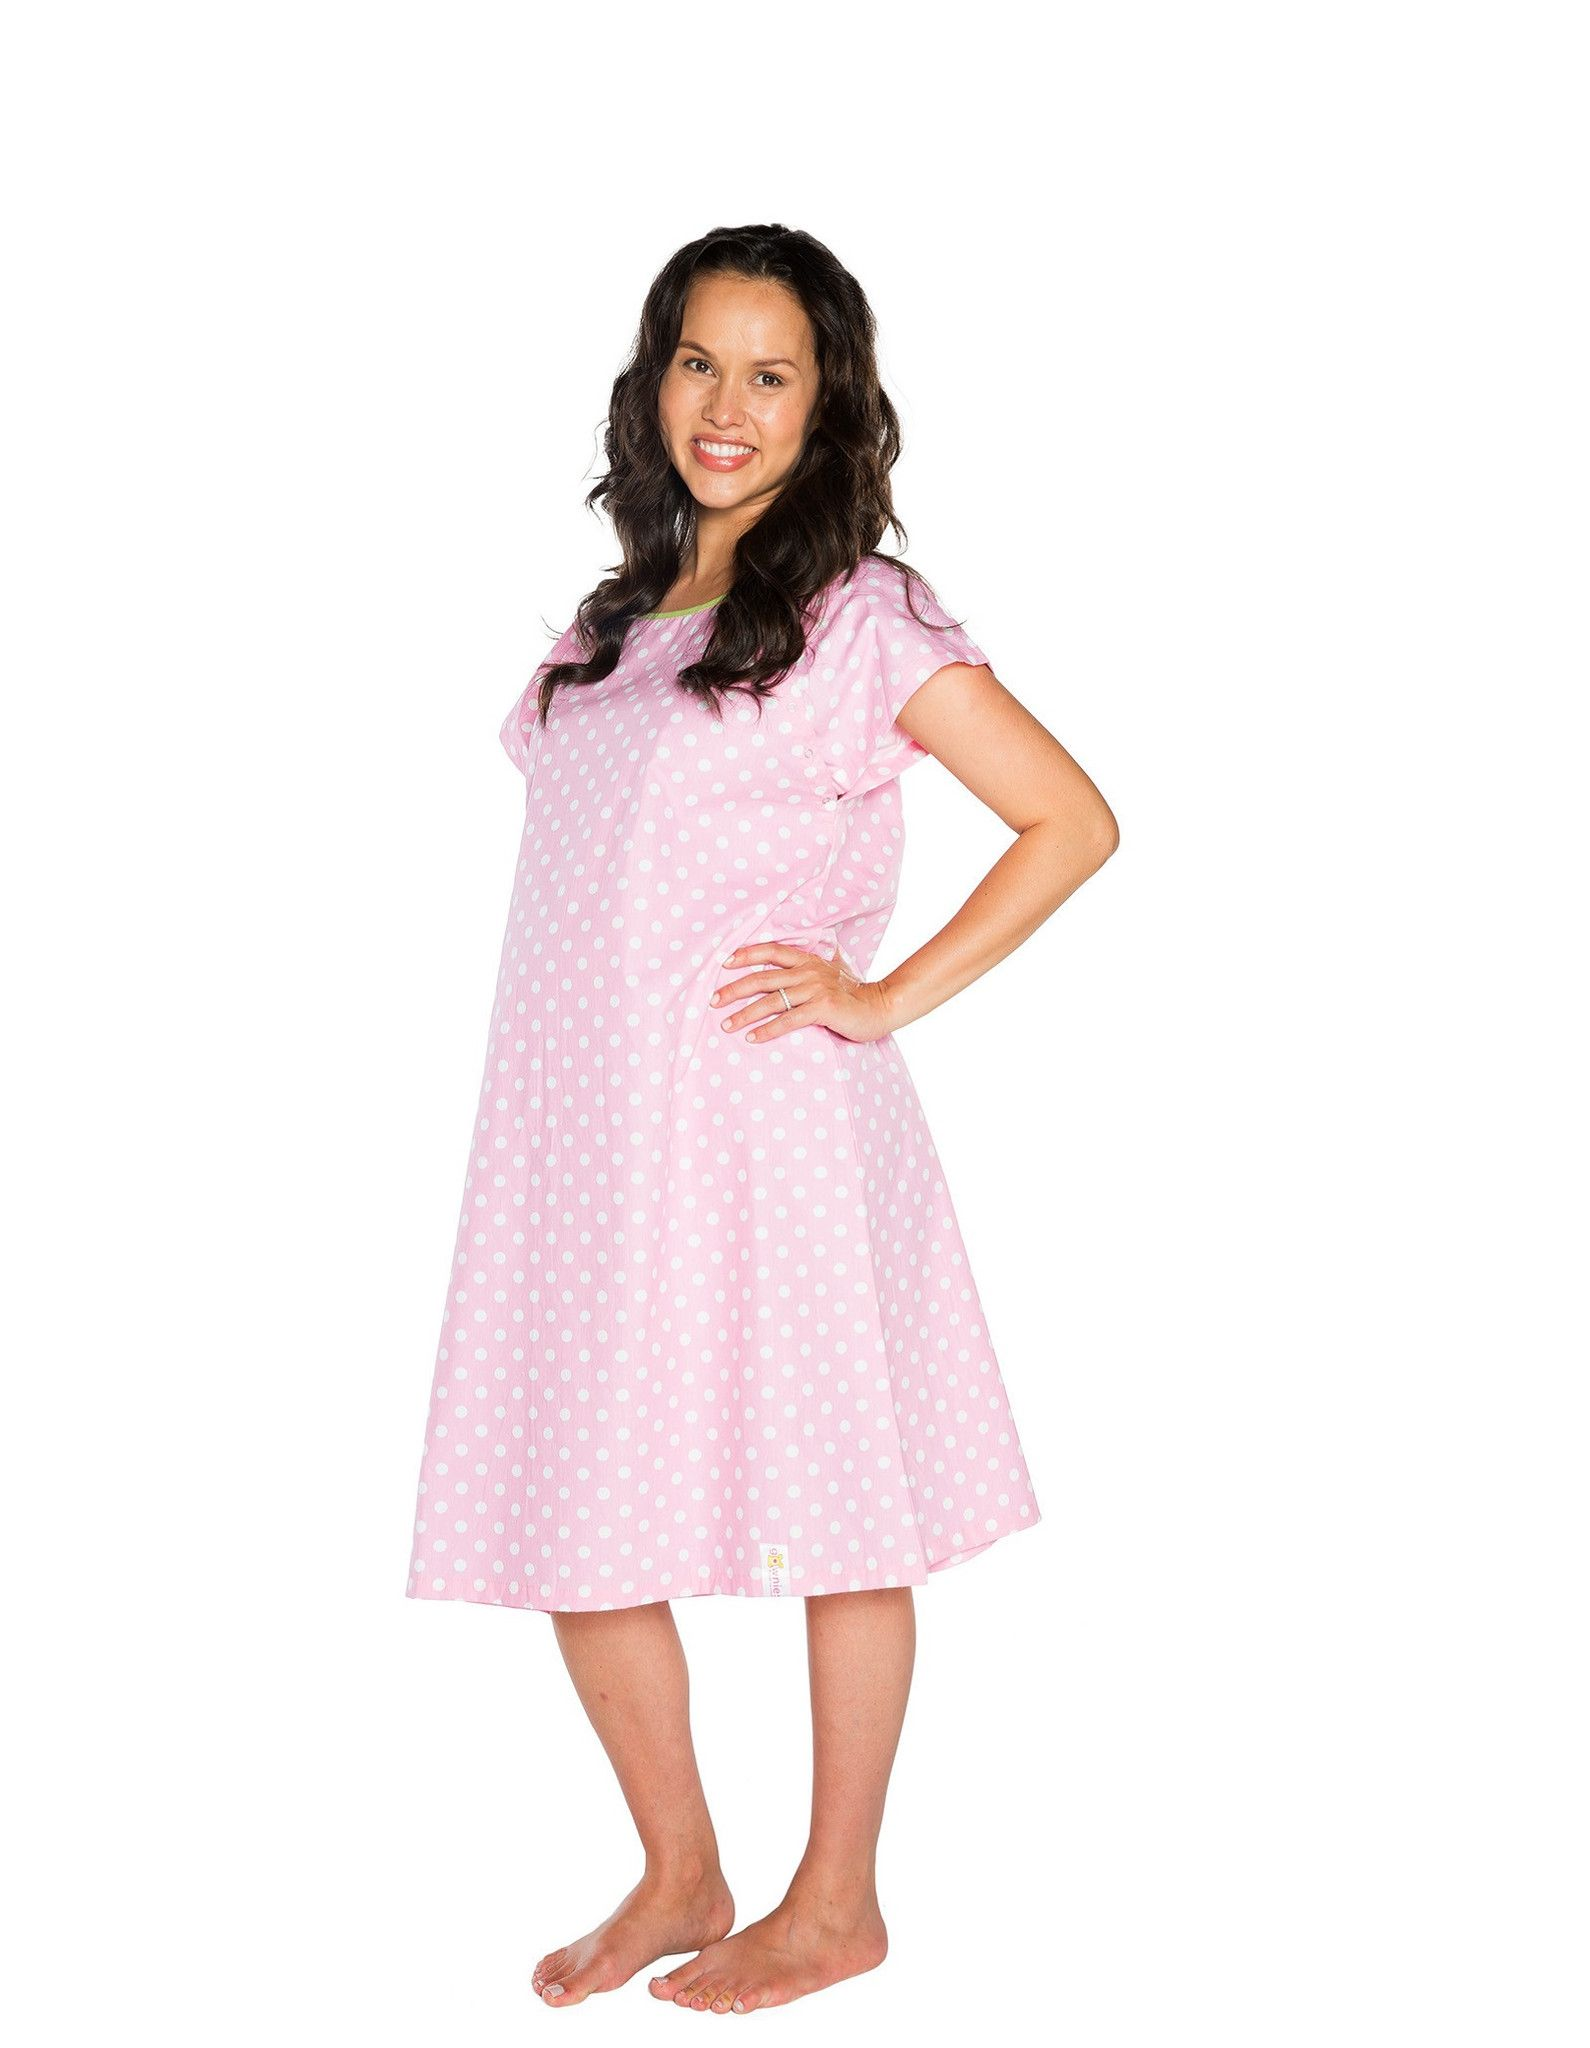 Molly Gownie Maternity Delivery Labor Hospital Birthing Gown ...